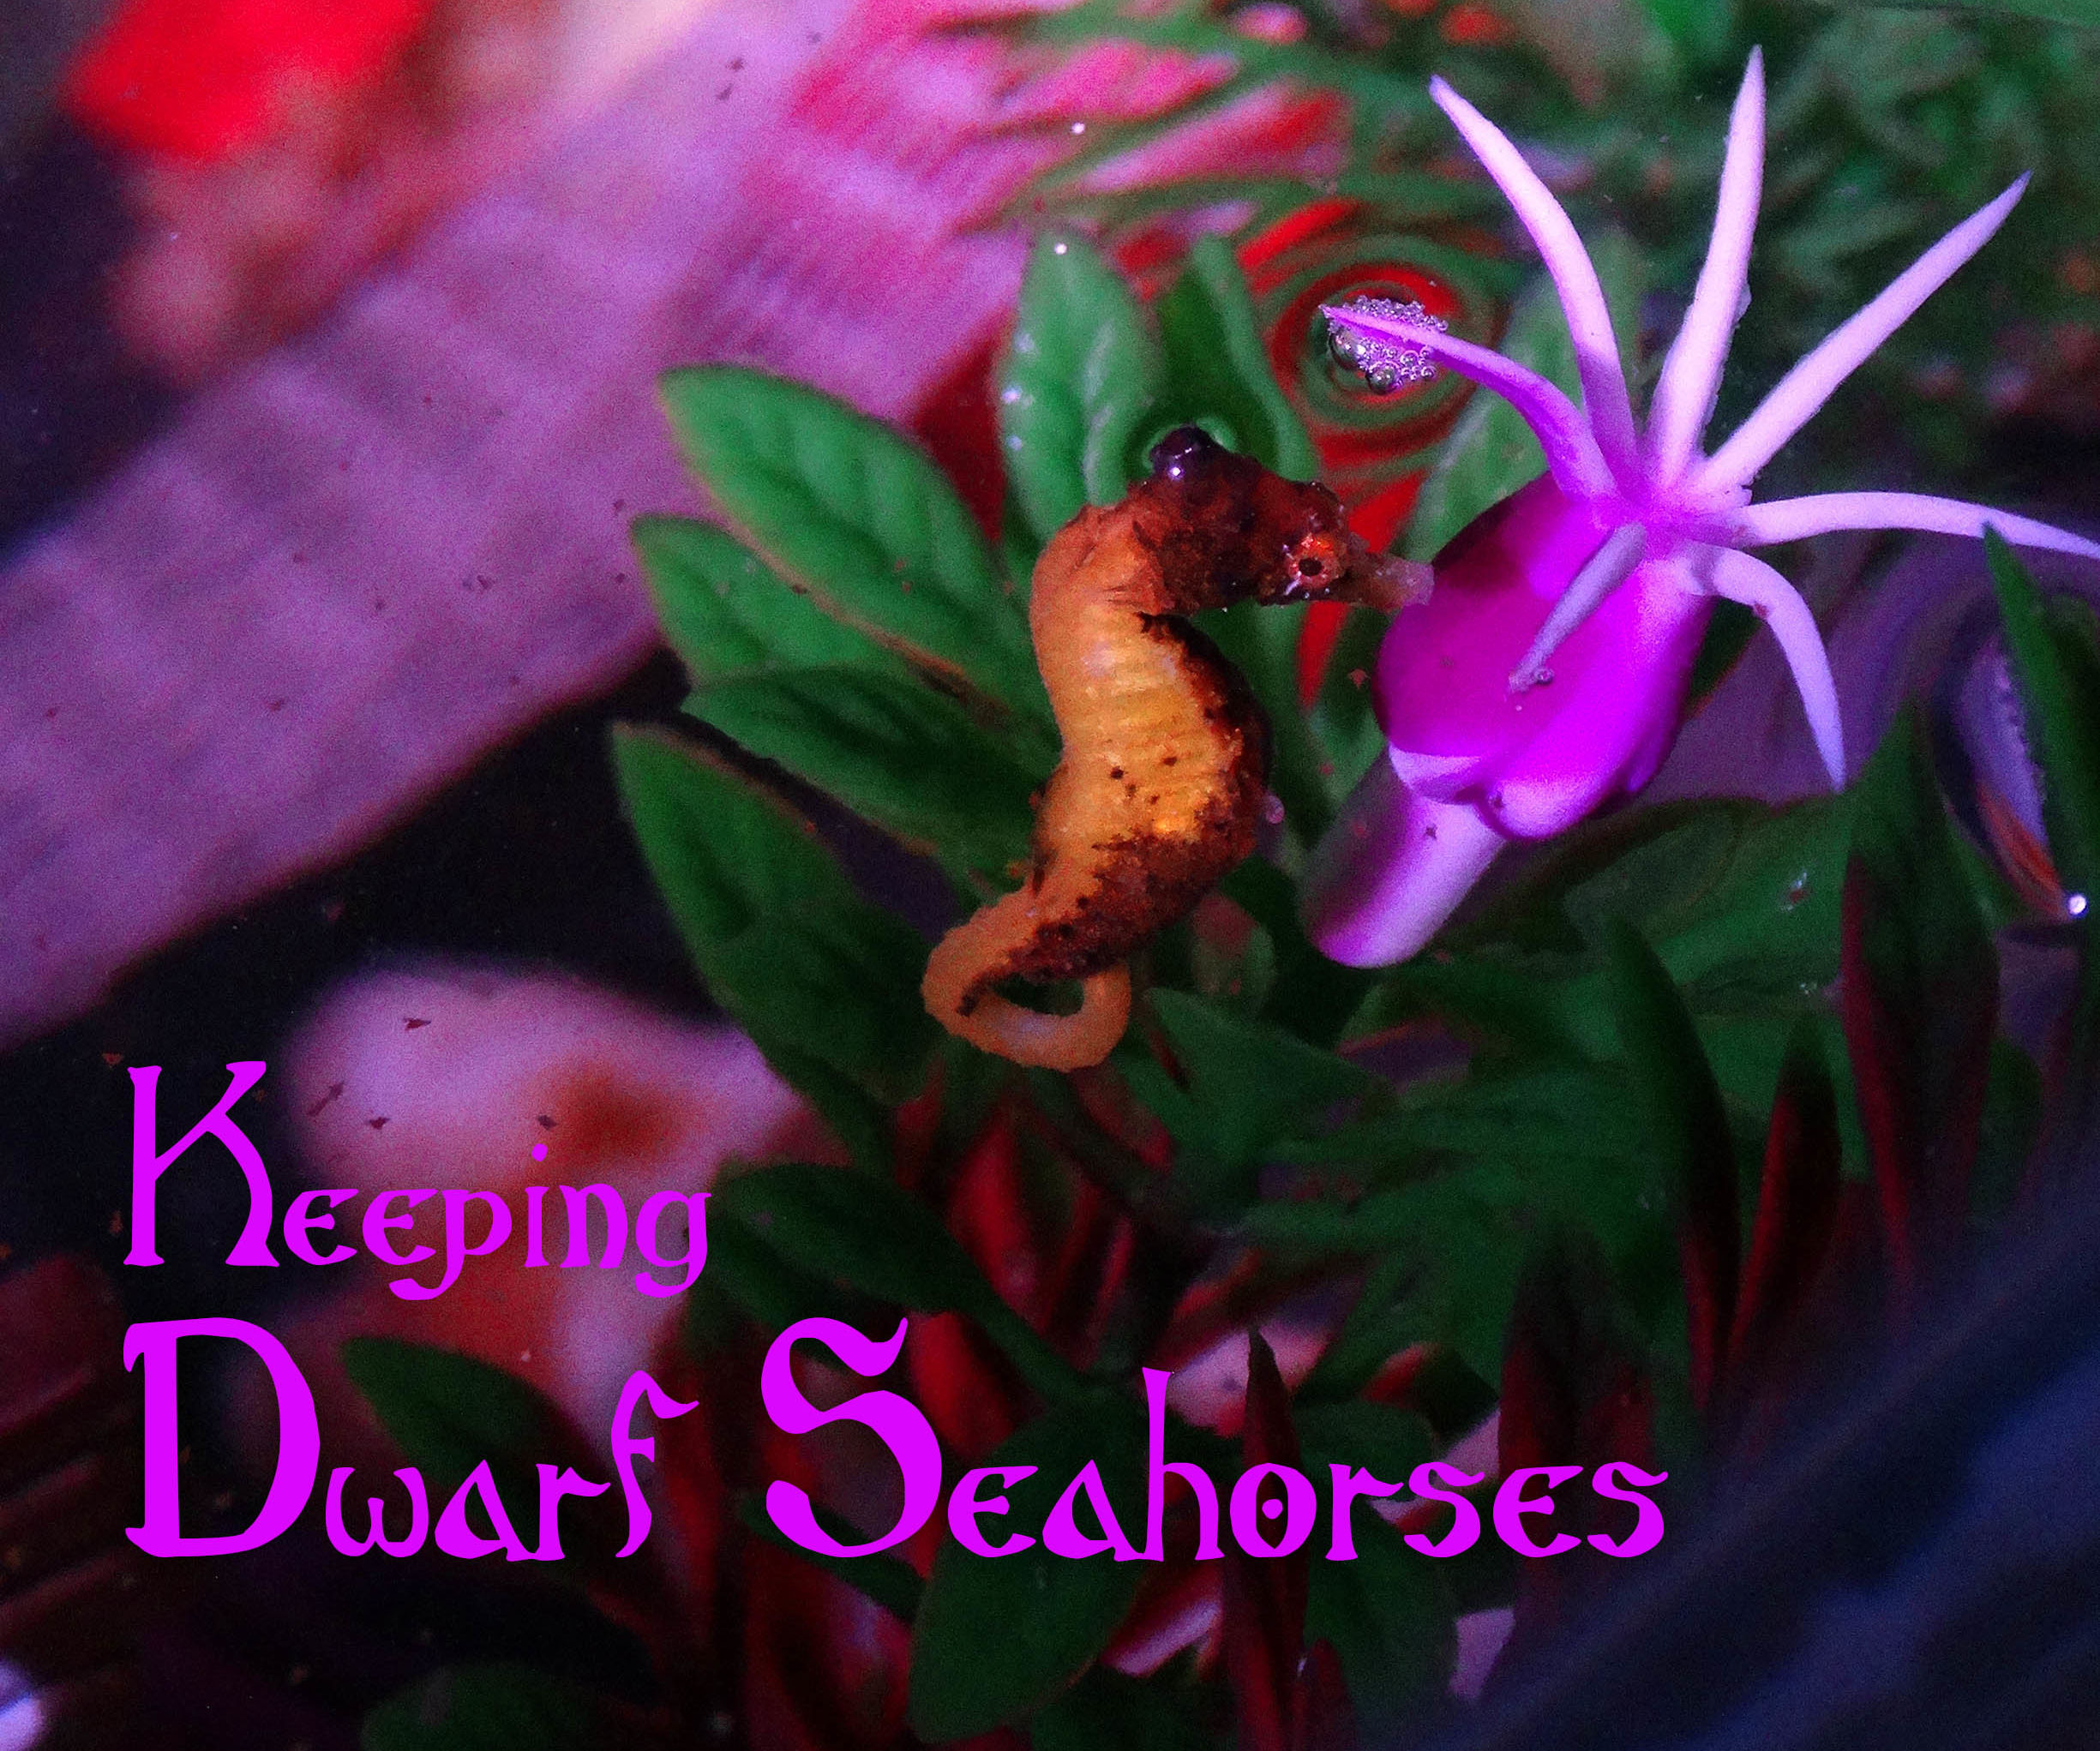 Keeping Dwarf Seahorses